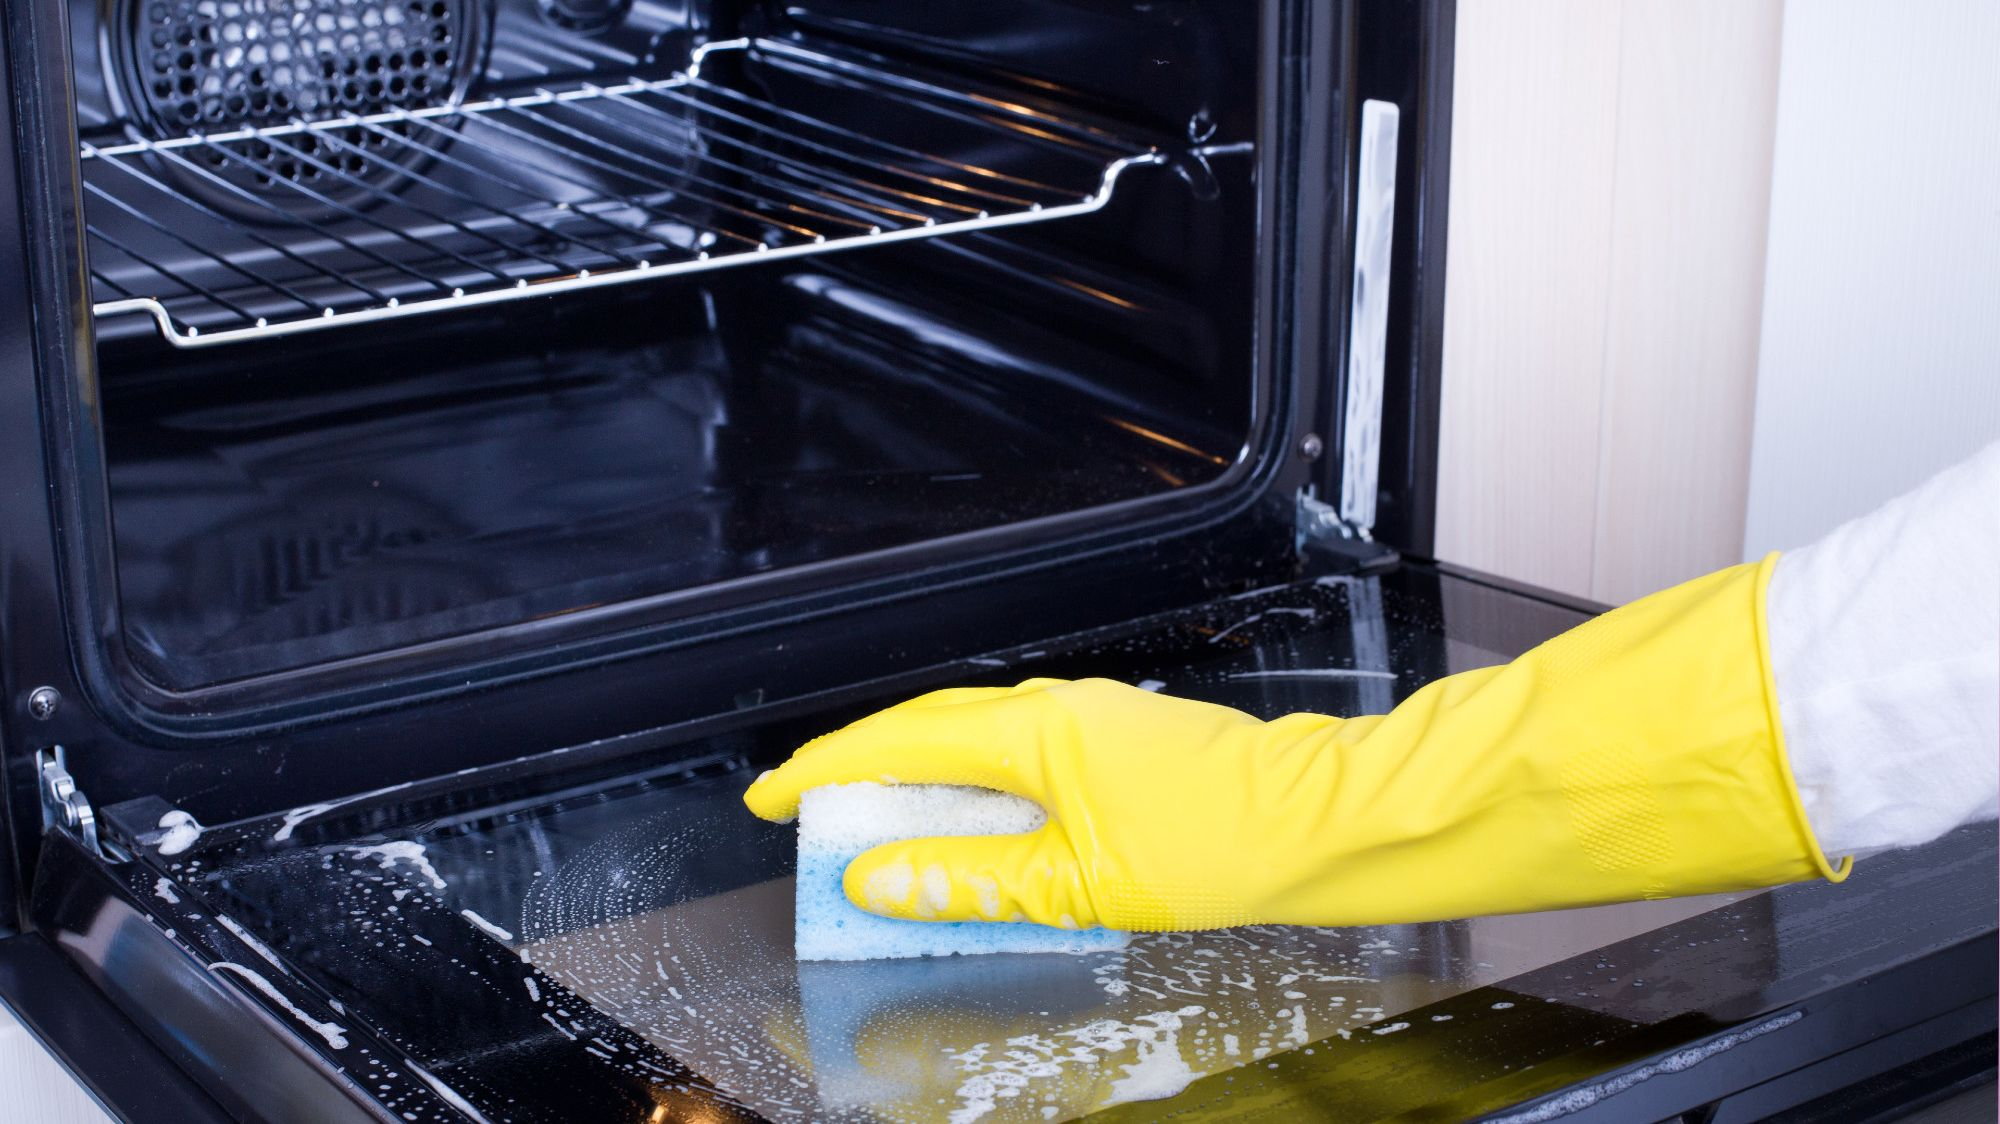 How Do Self-Cleaning Ovens Work?